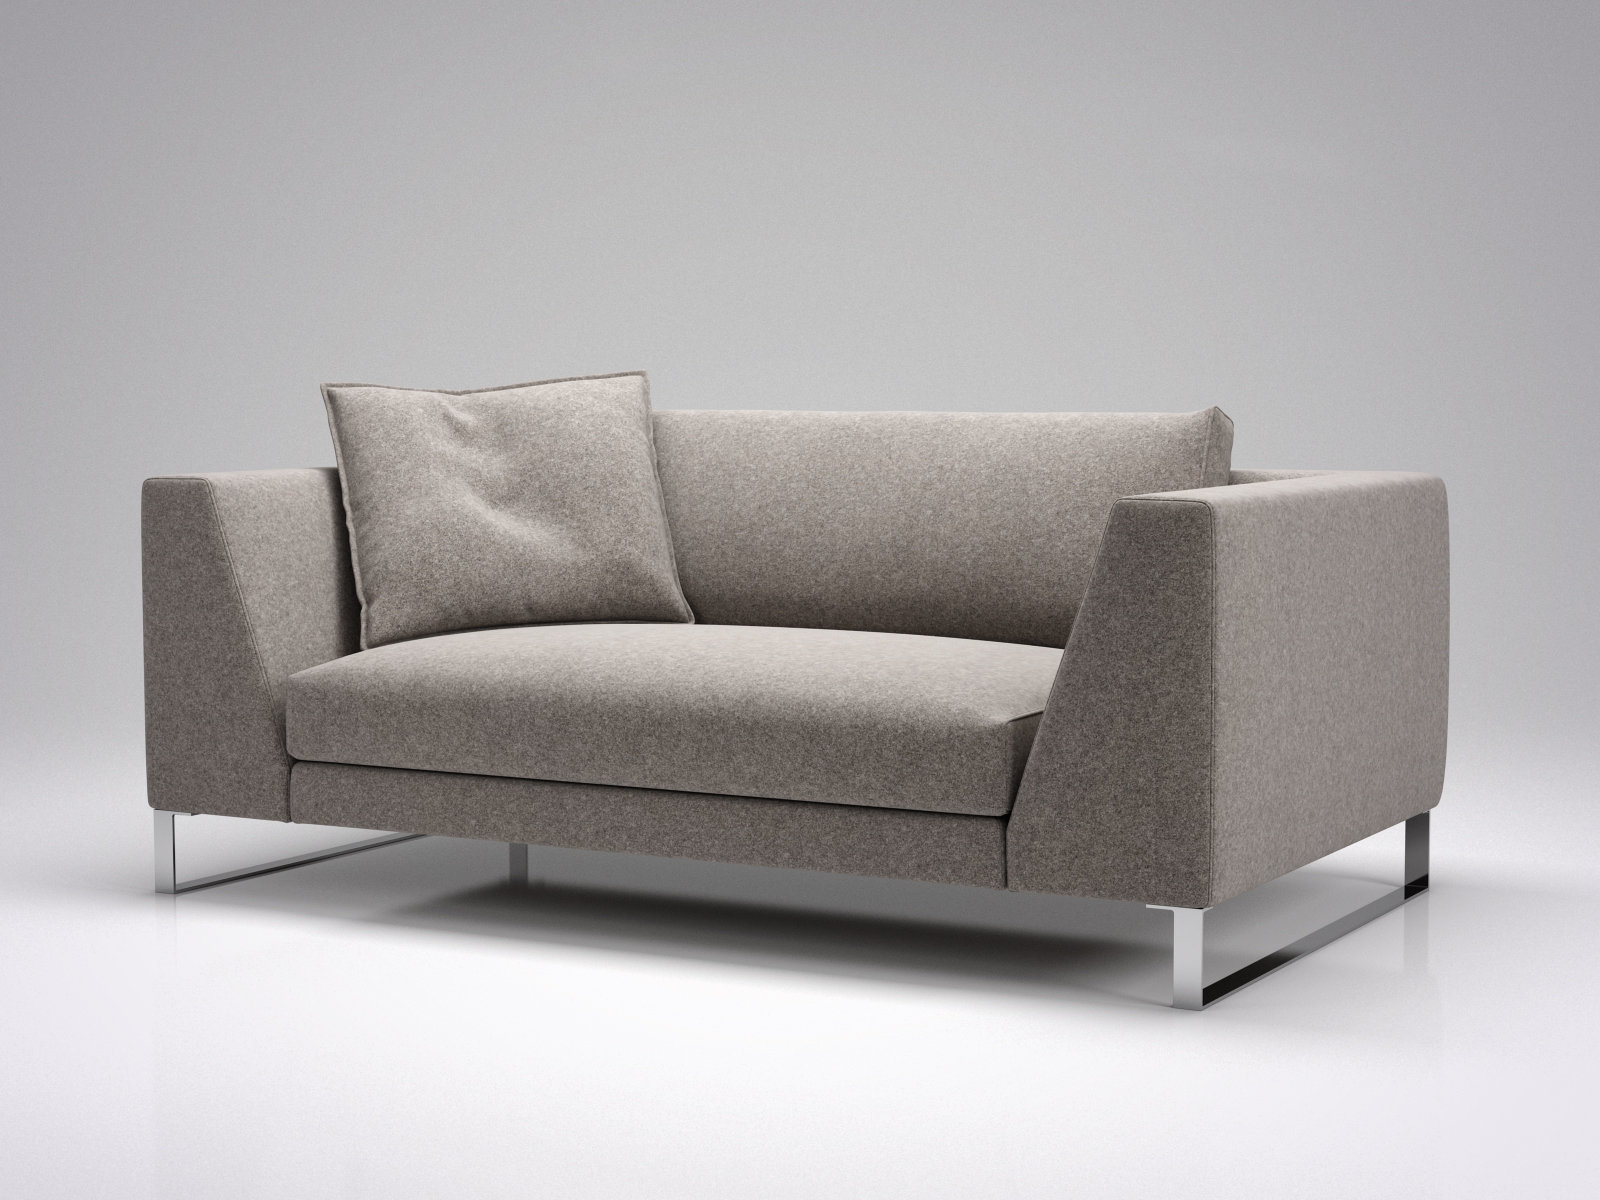 Exclusif 2 Sofa S 3d Model Ligne Roset